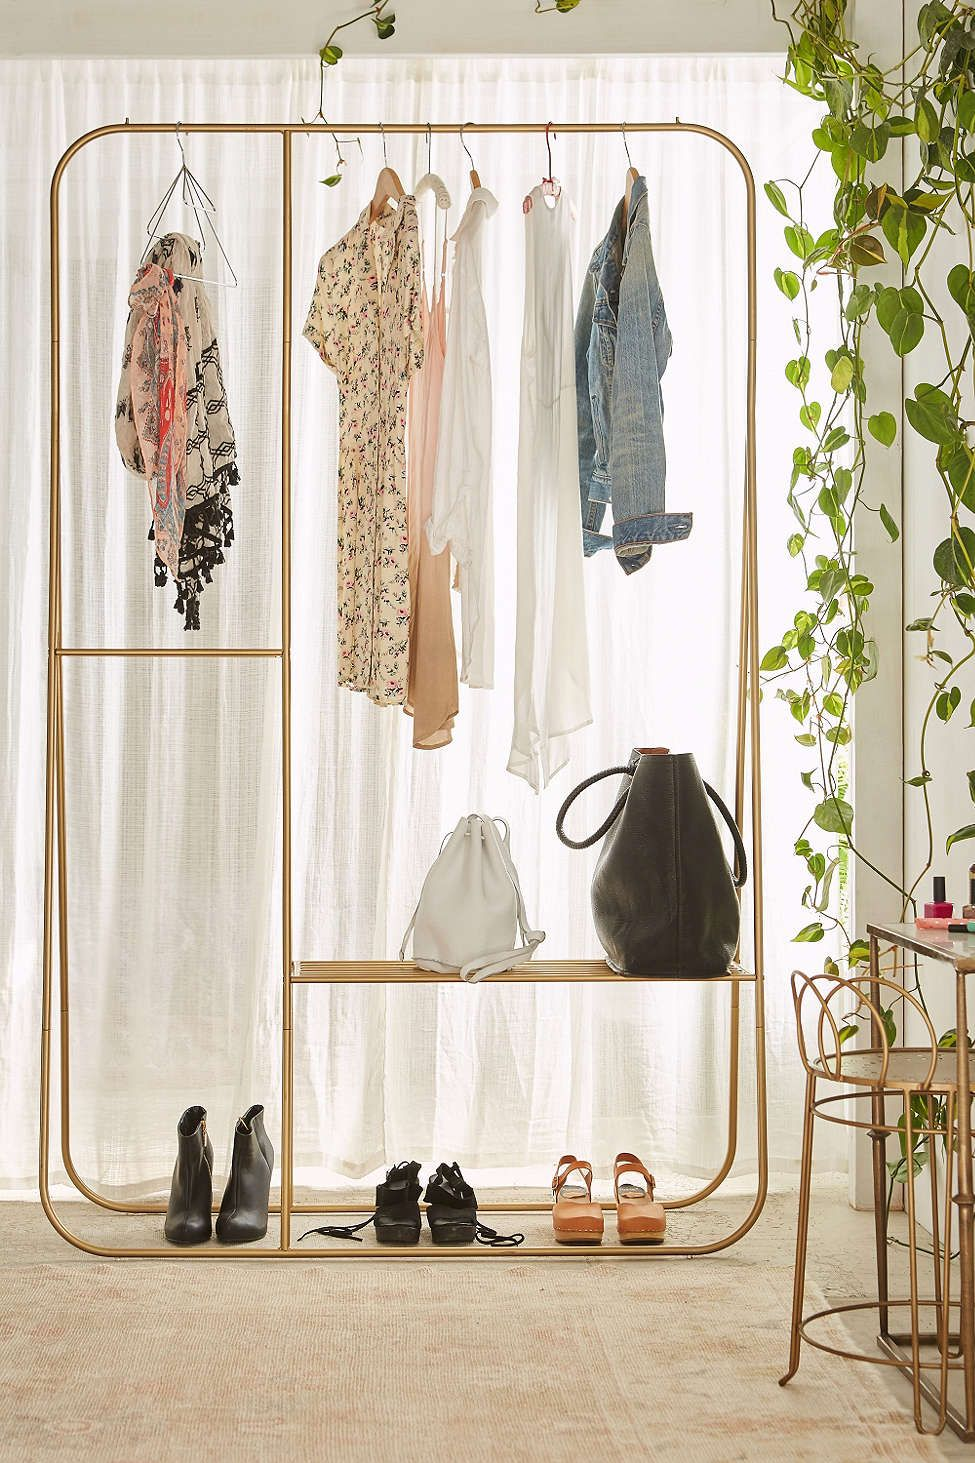 Kleiderständer Urban Outfitters Calvin Double Clothing Rack Interior Home Decor Garment Racks